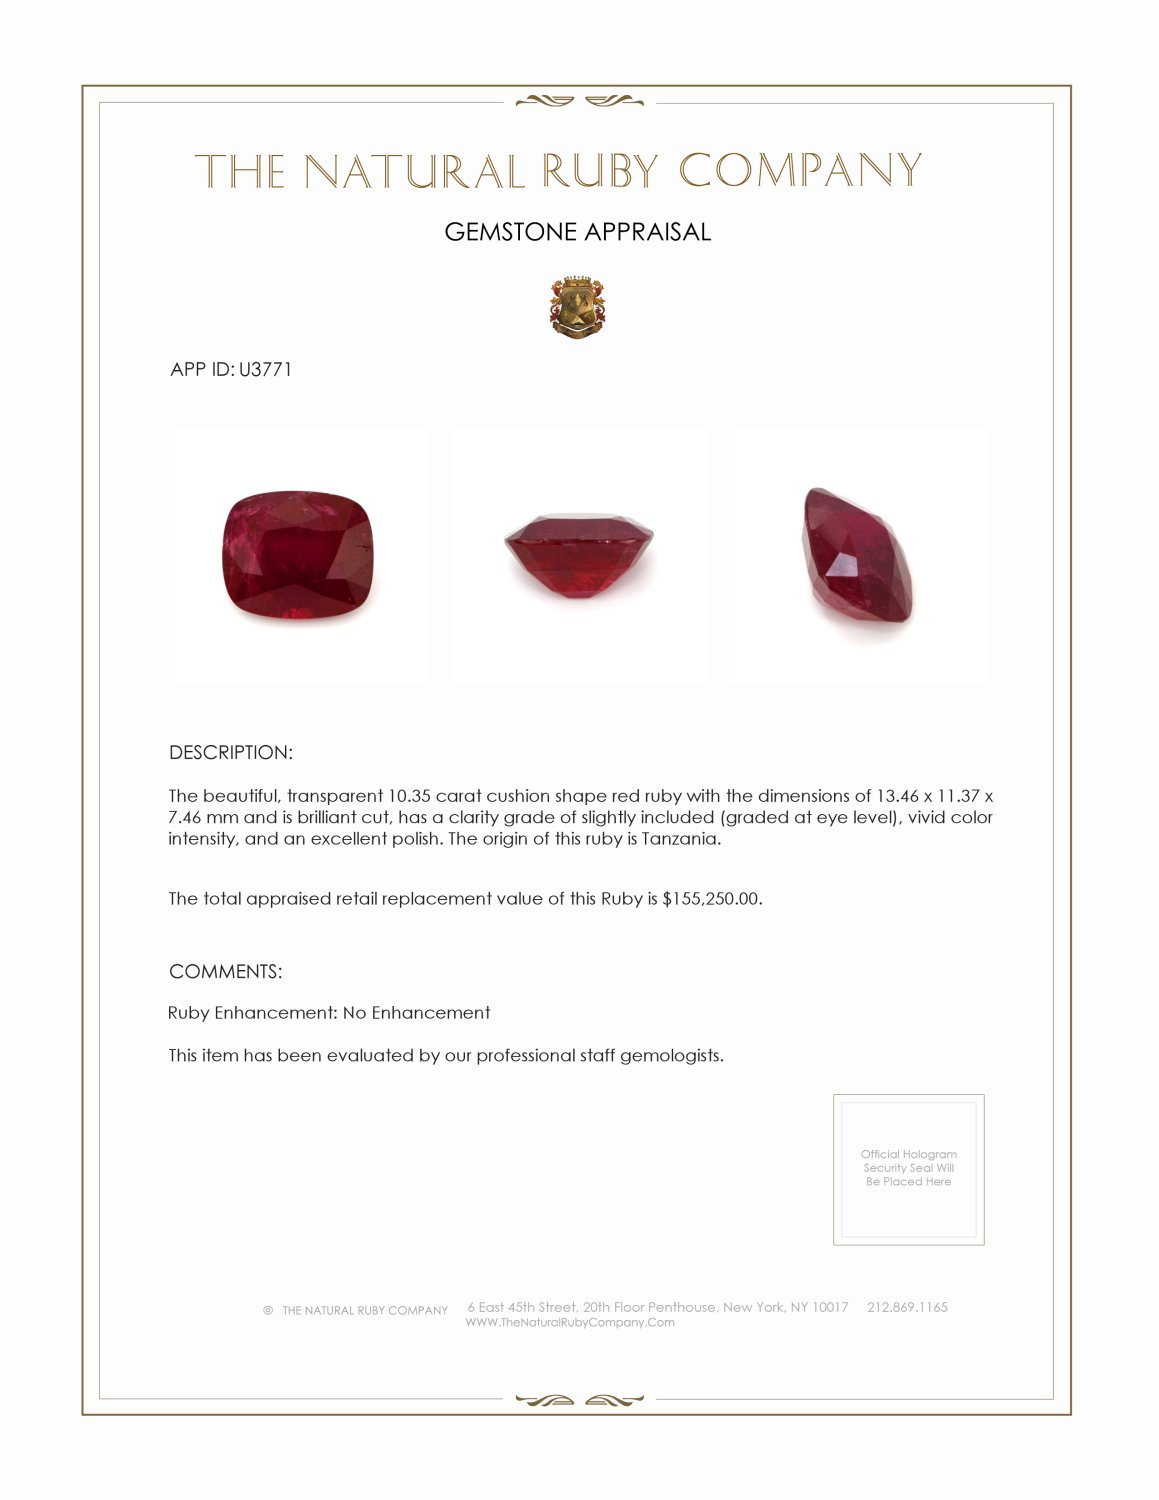 Natural Untreated Ruby U3771 Certification 5